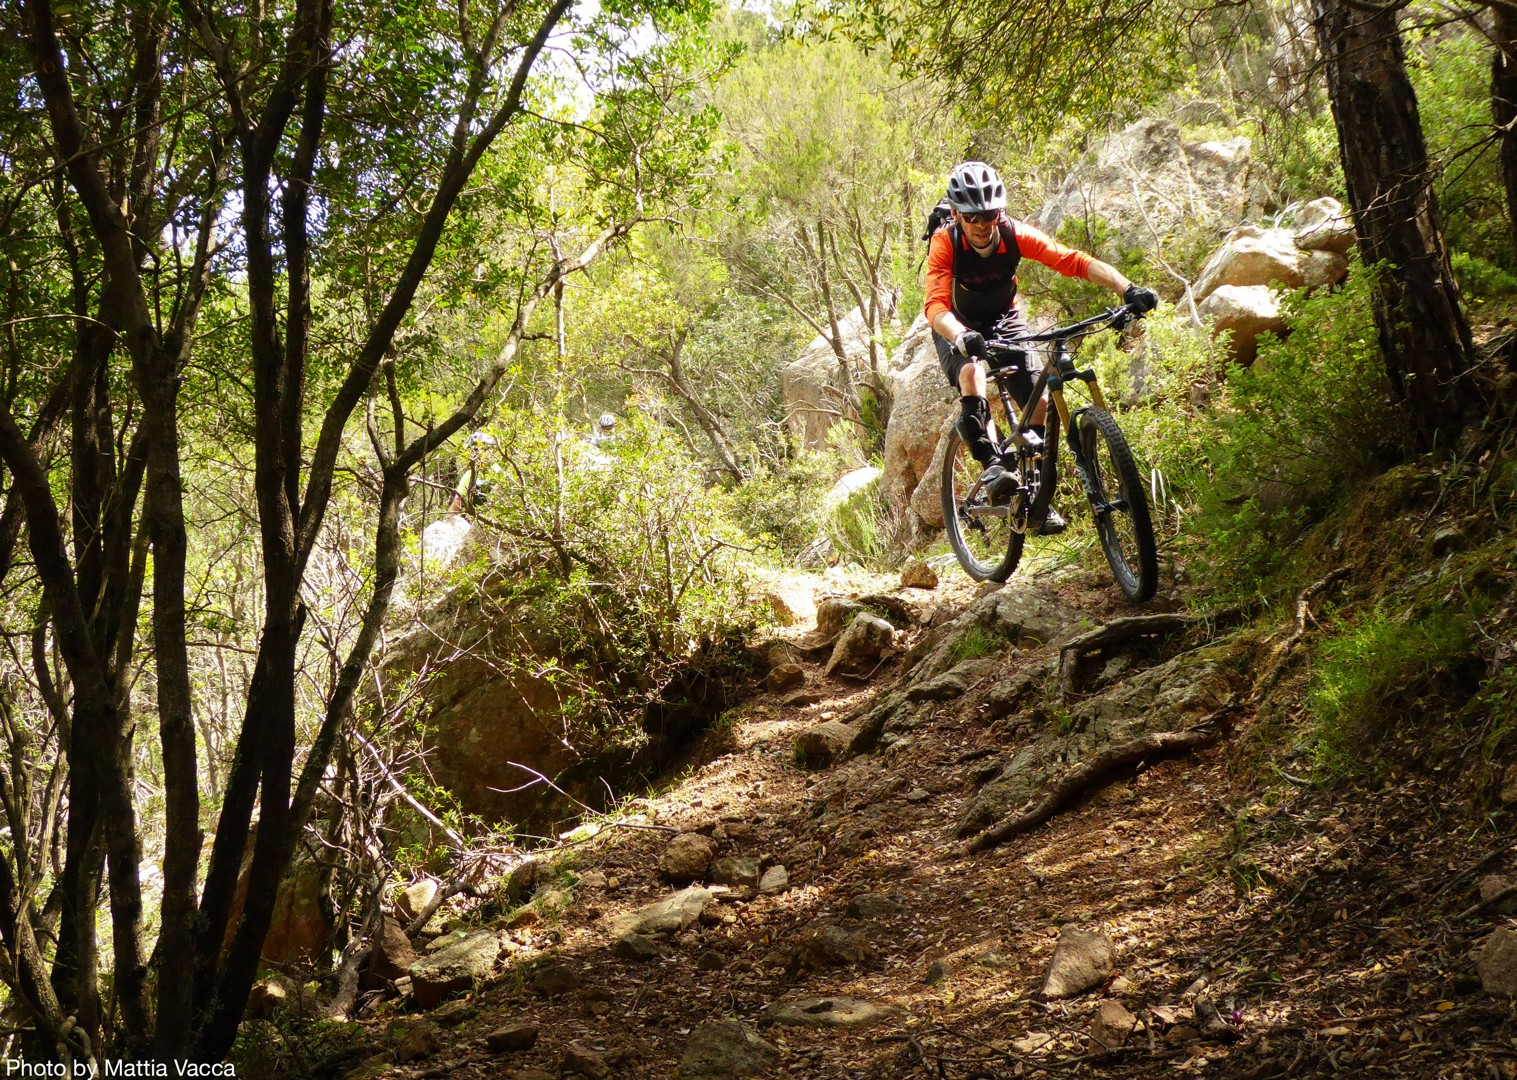 pula-enduro-in-italy-sardinia-mountain-bike-holiday.jpg - Sardinia - Sardinian Enduro - Guided Mountain Bike Holiday - Mountain Biking